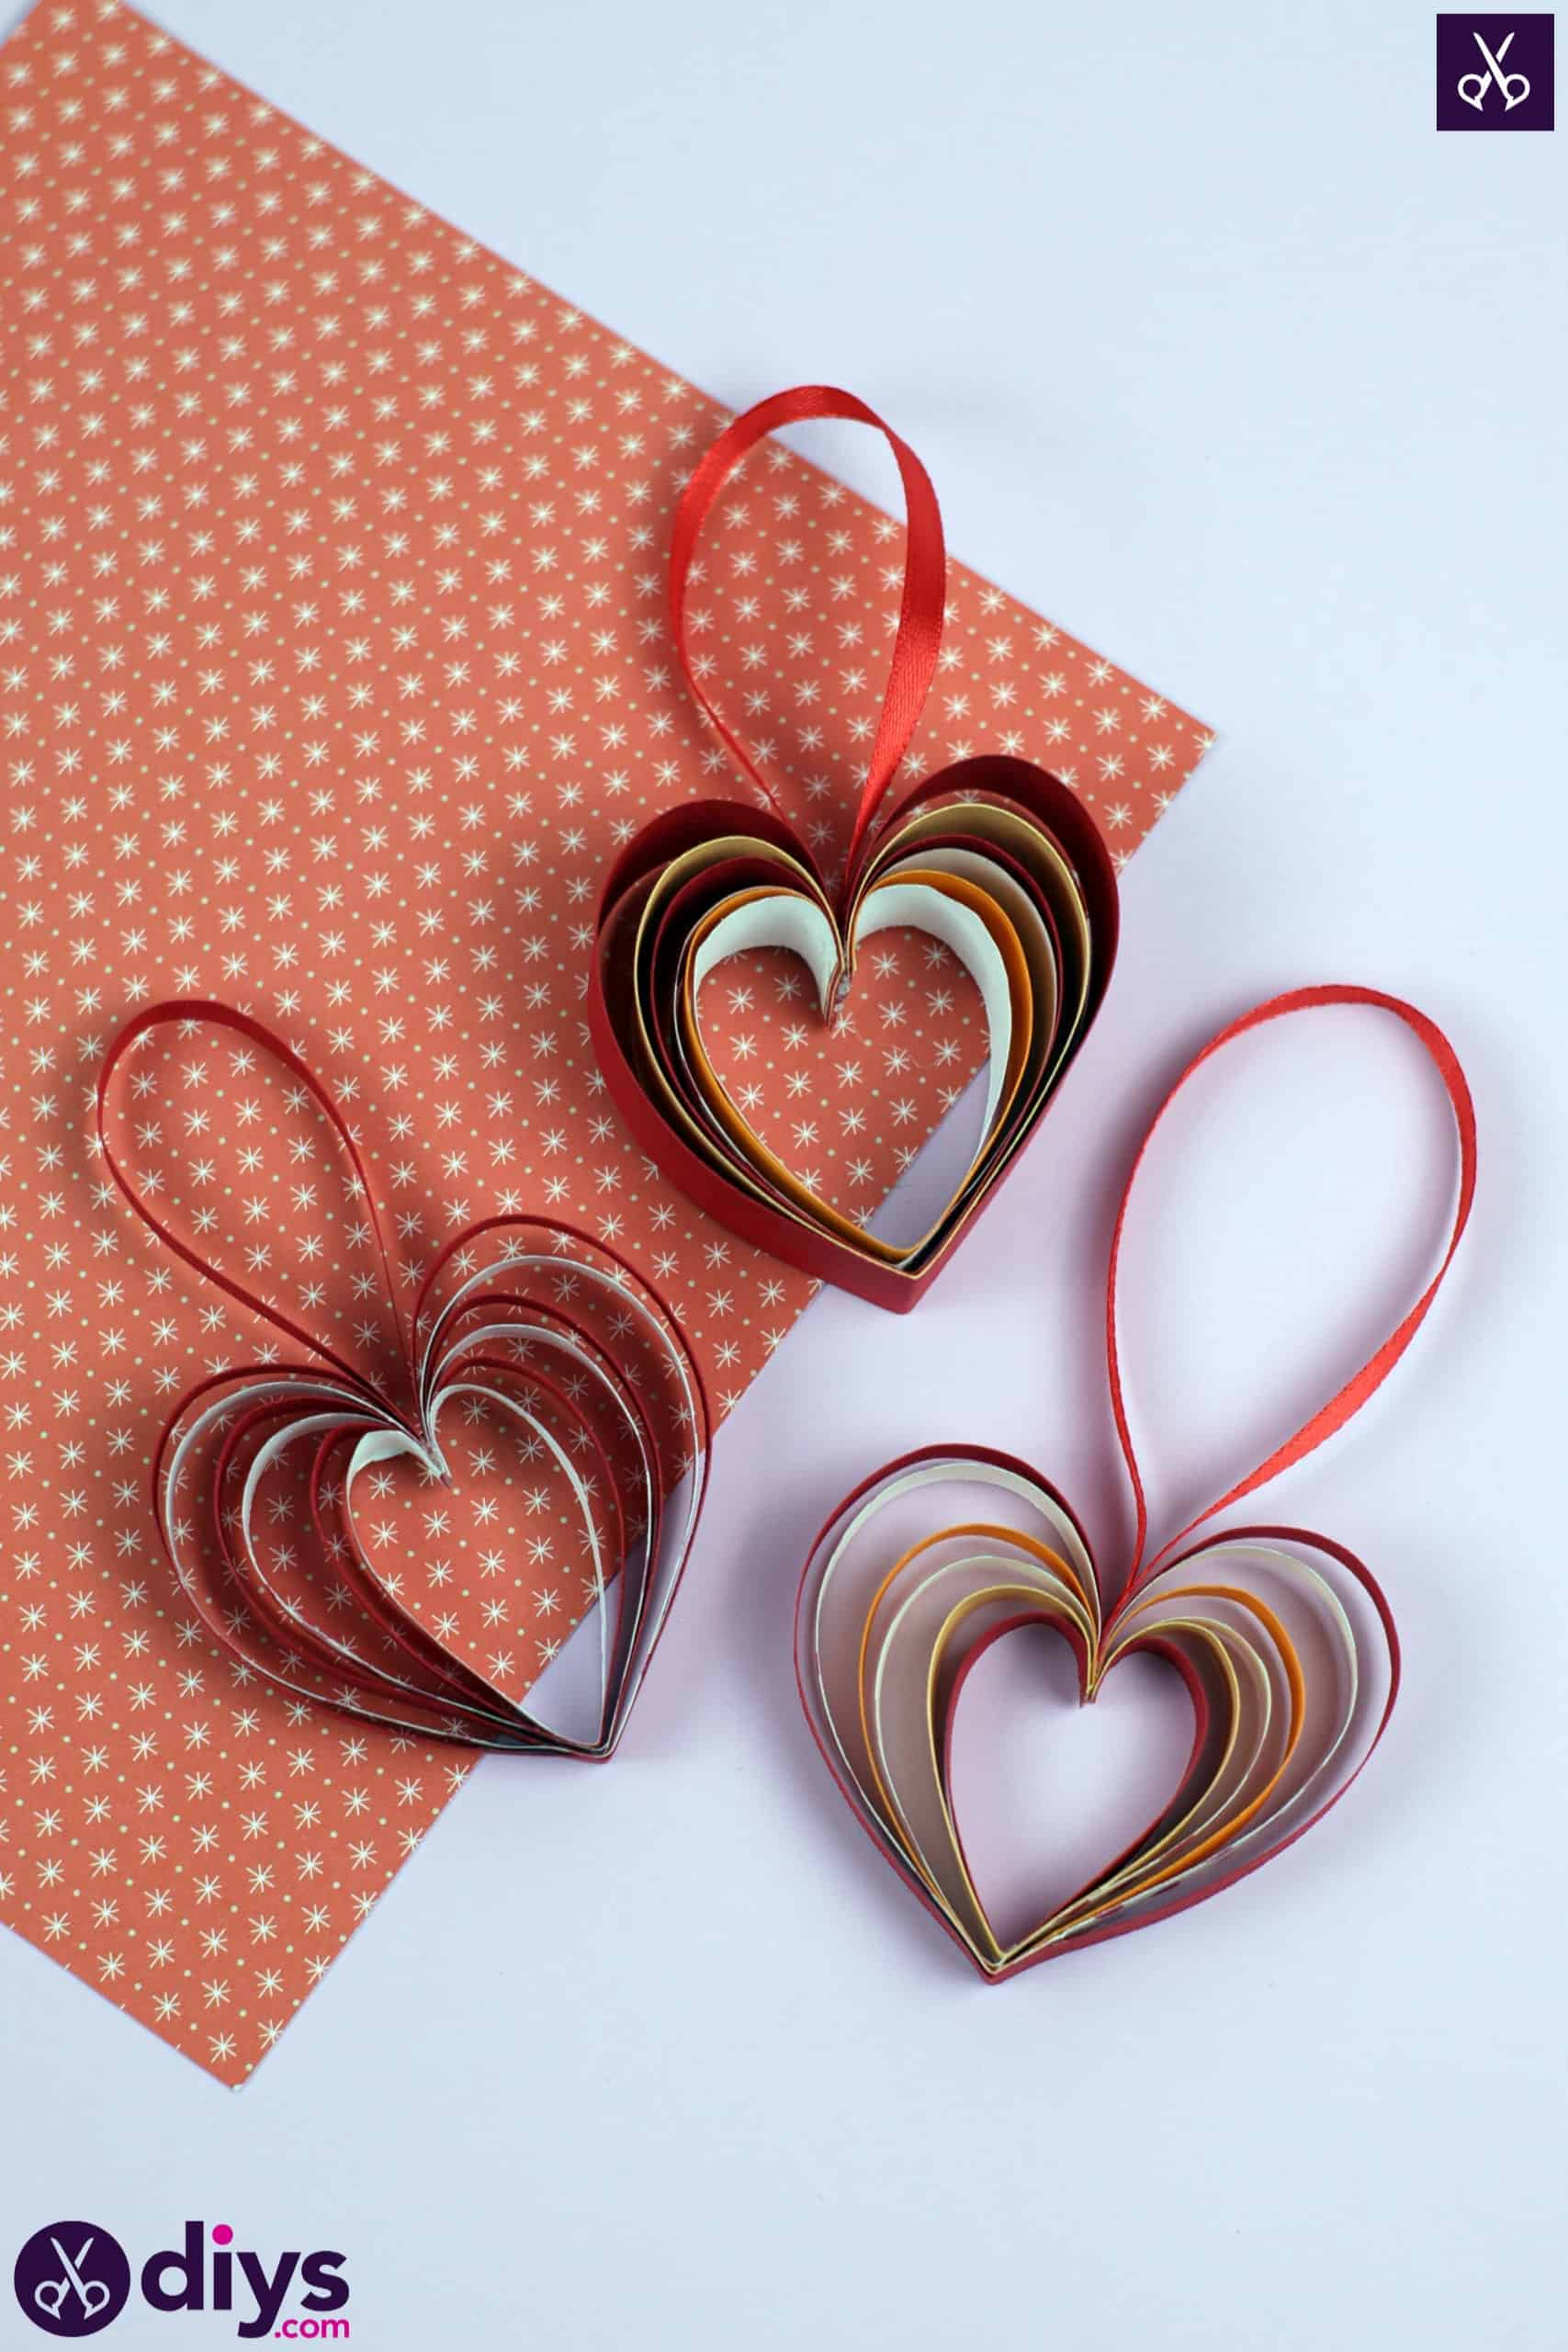 Diy ribbon heart project